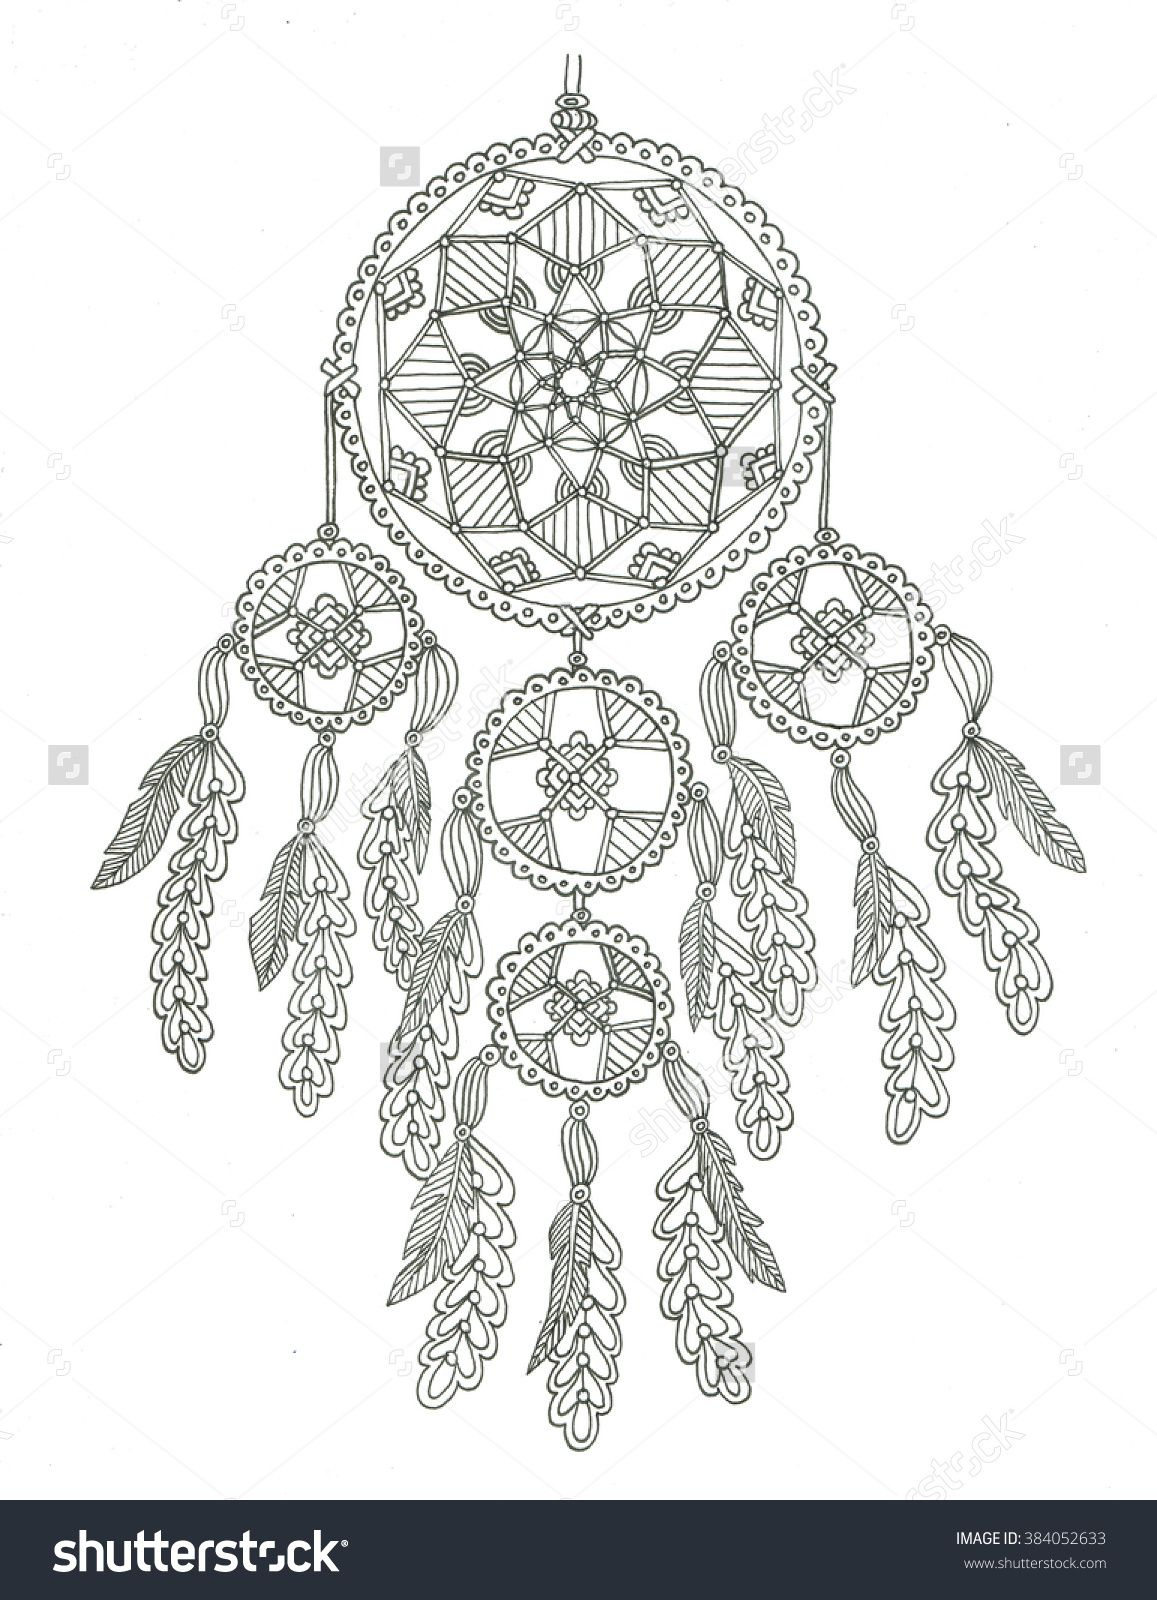 Dream Catcher Coloring Pages  Printable 3p - Free For Children